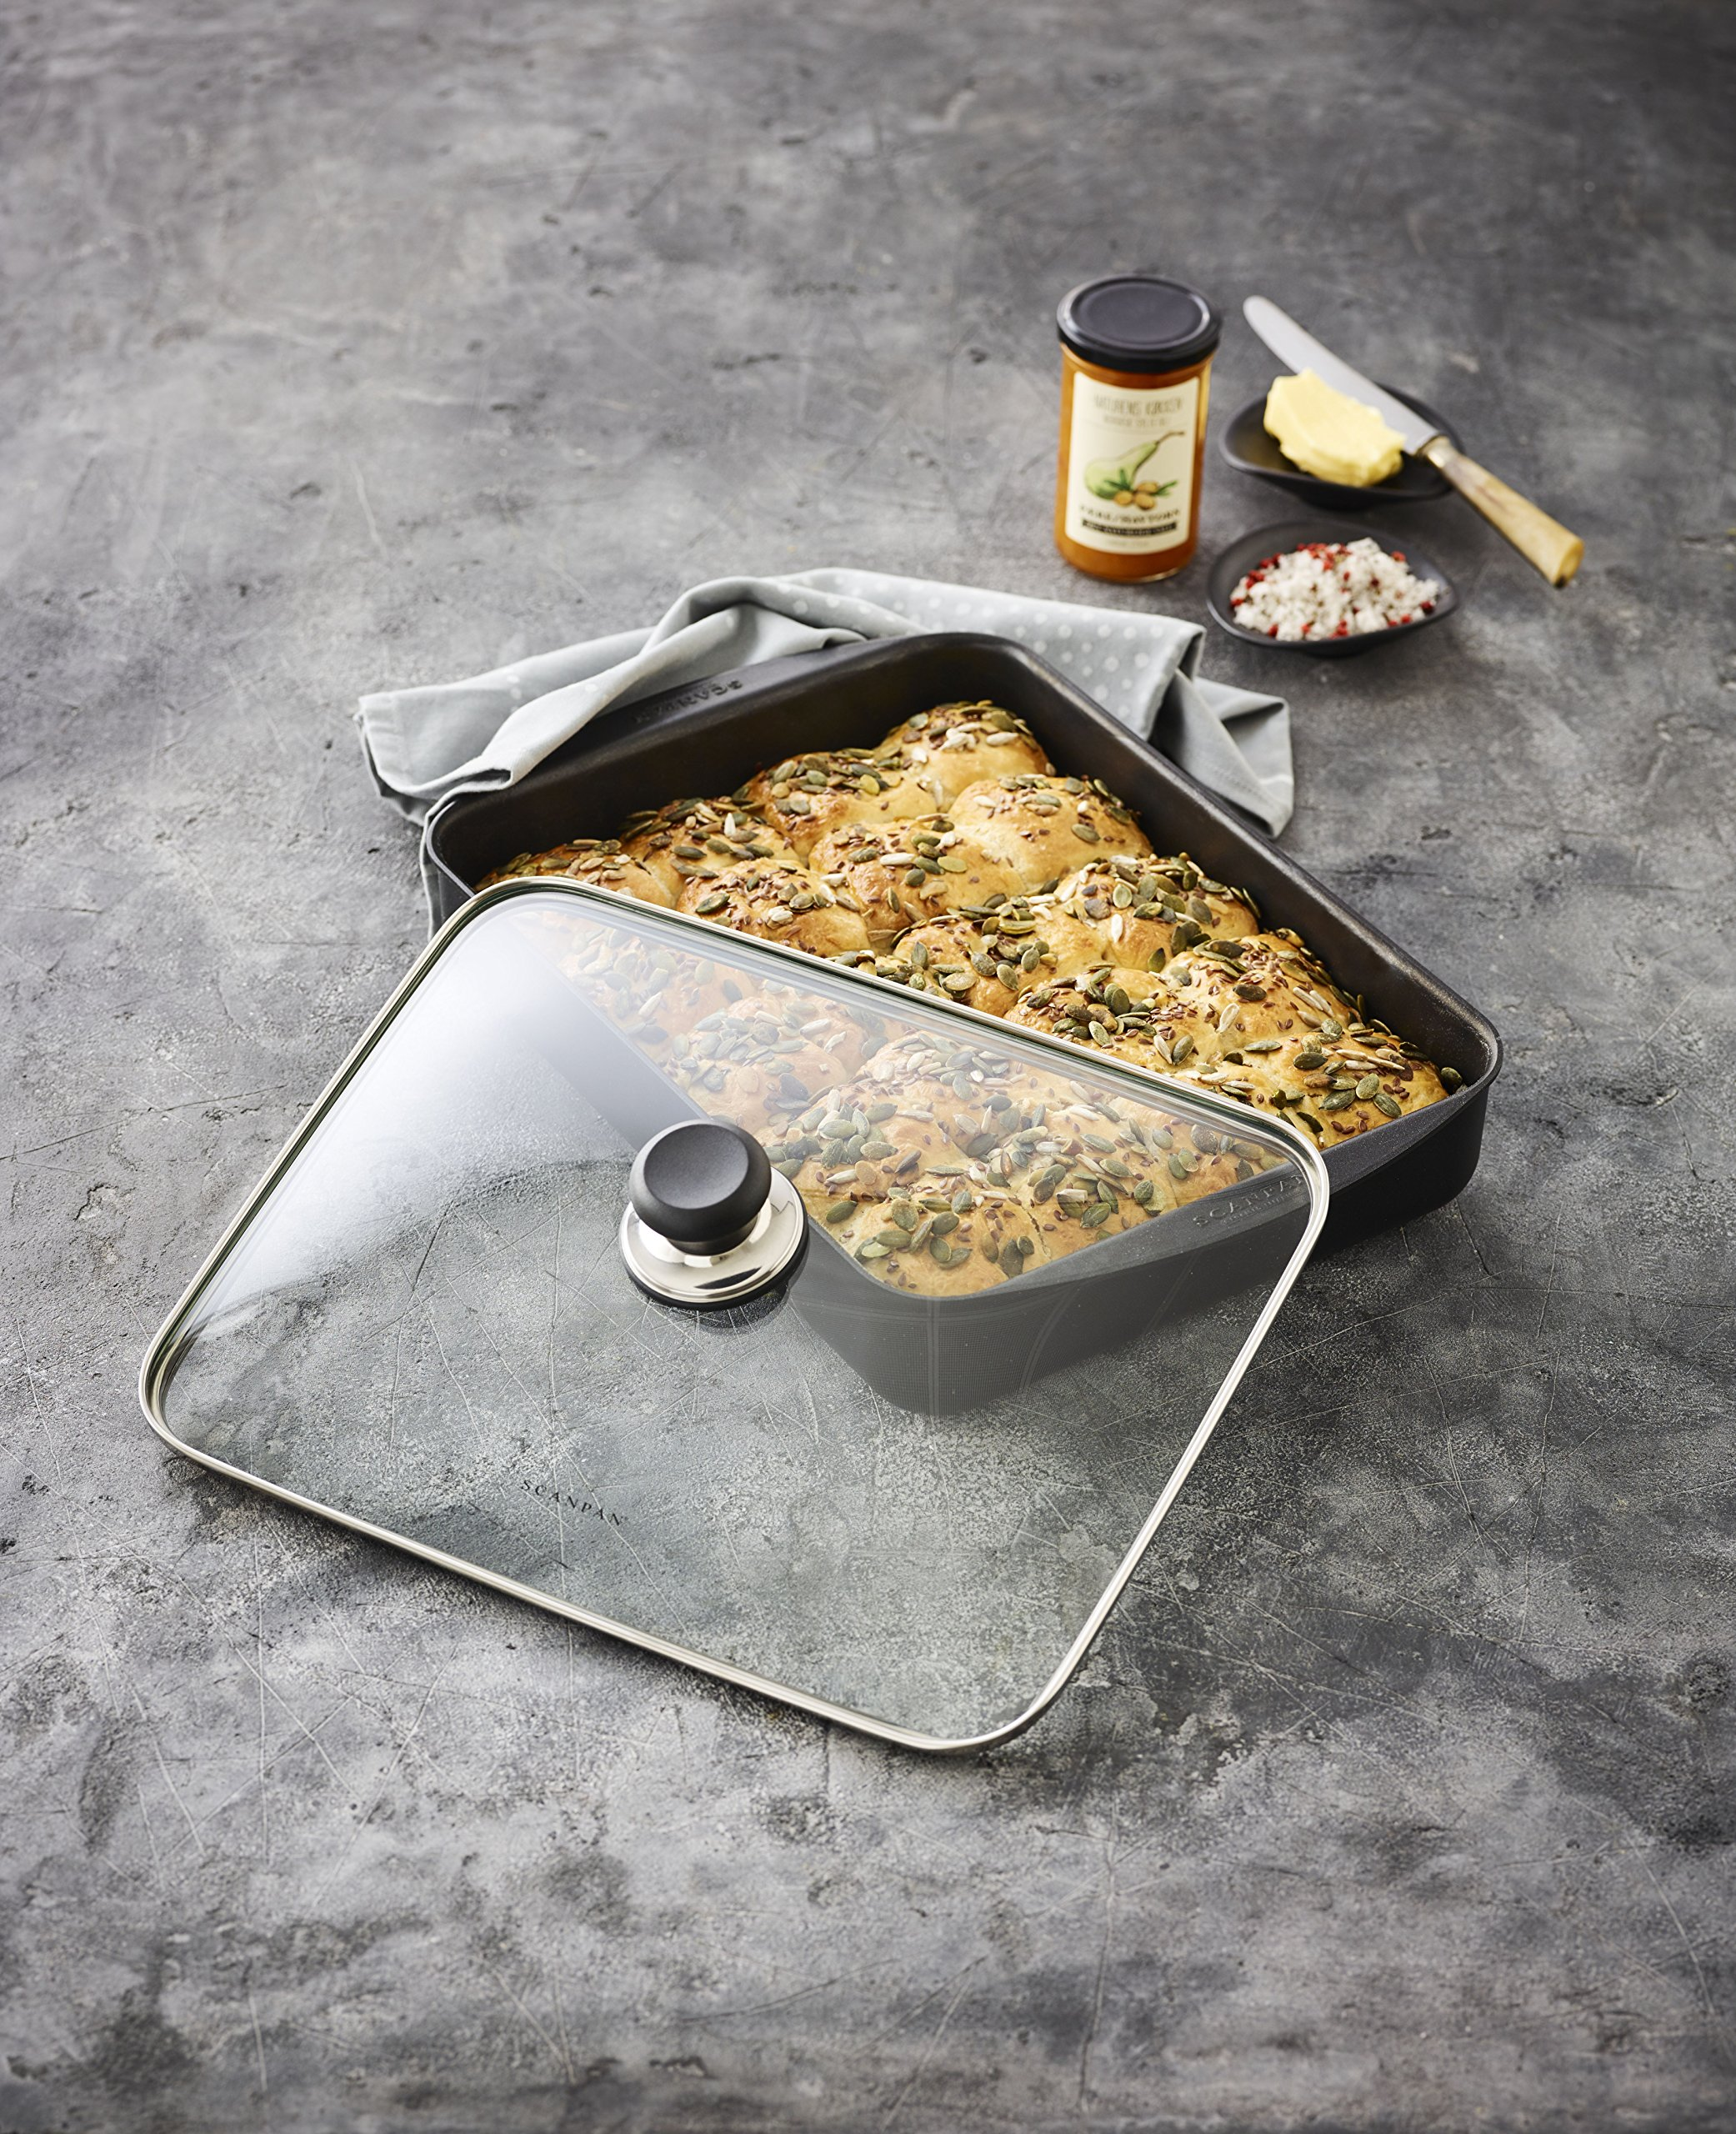 Scanpan Classic Roasting Pan, 3.25 QT, 13.5'' x 8.75'' by Scanpan (Image #5)